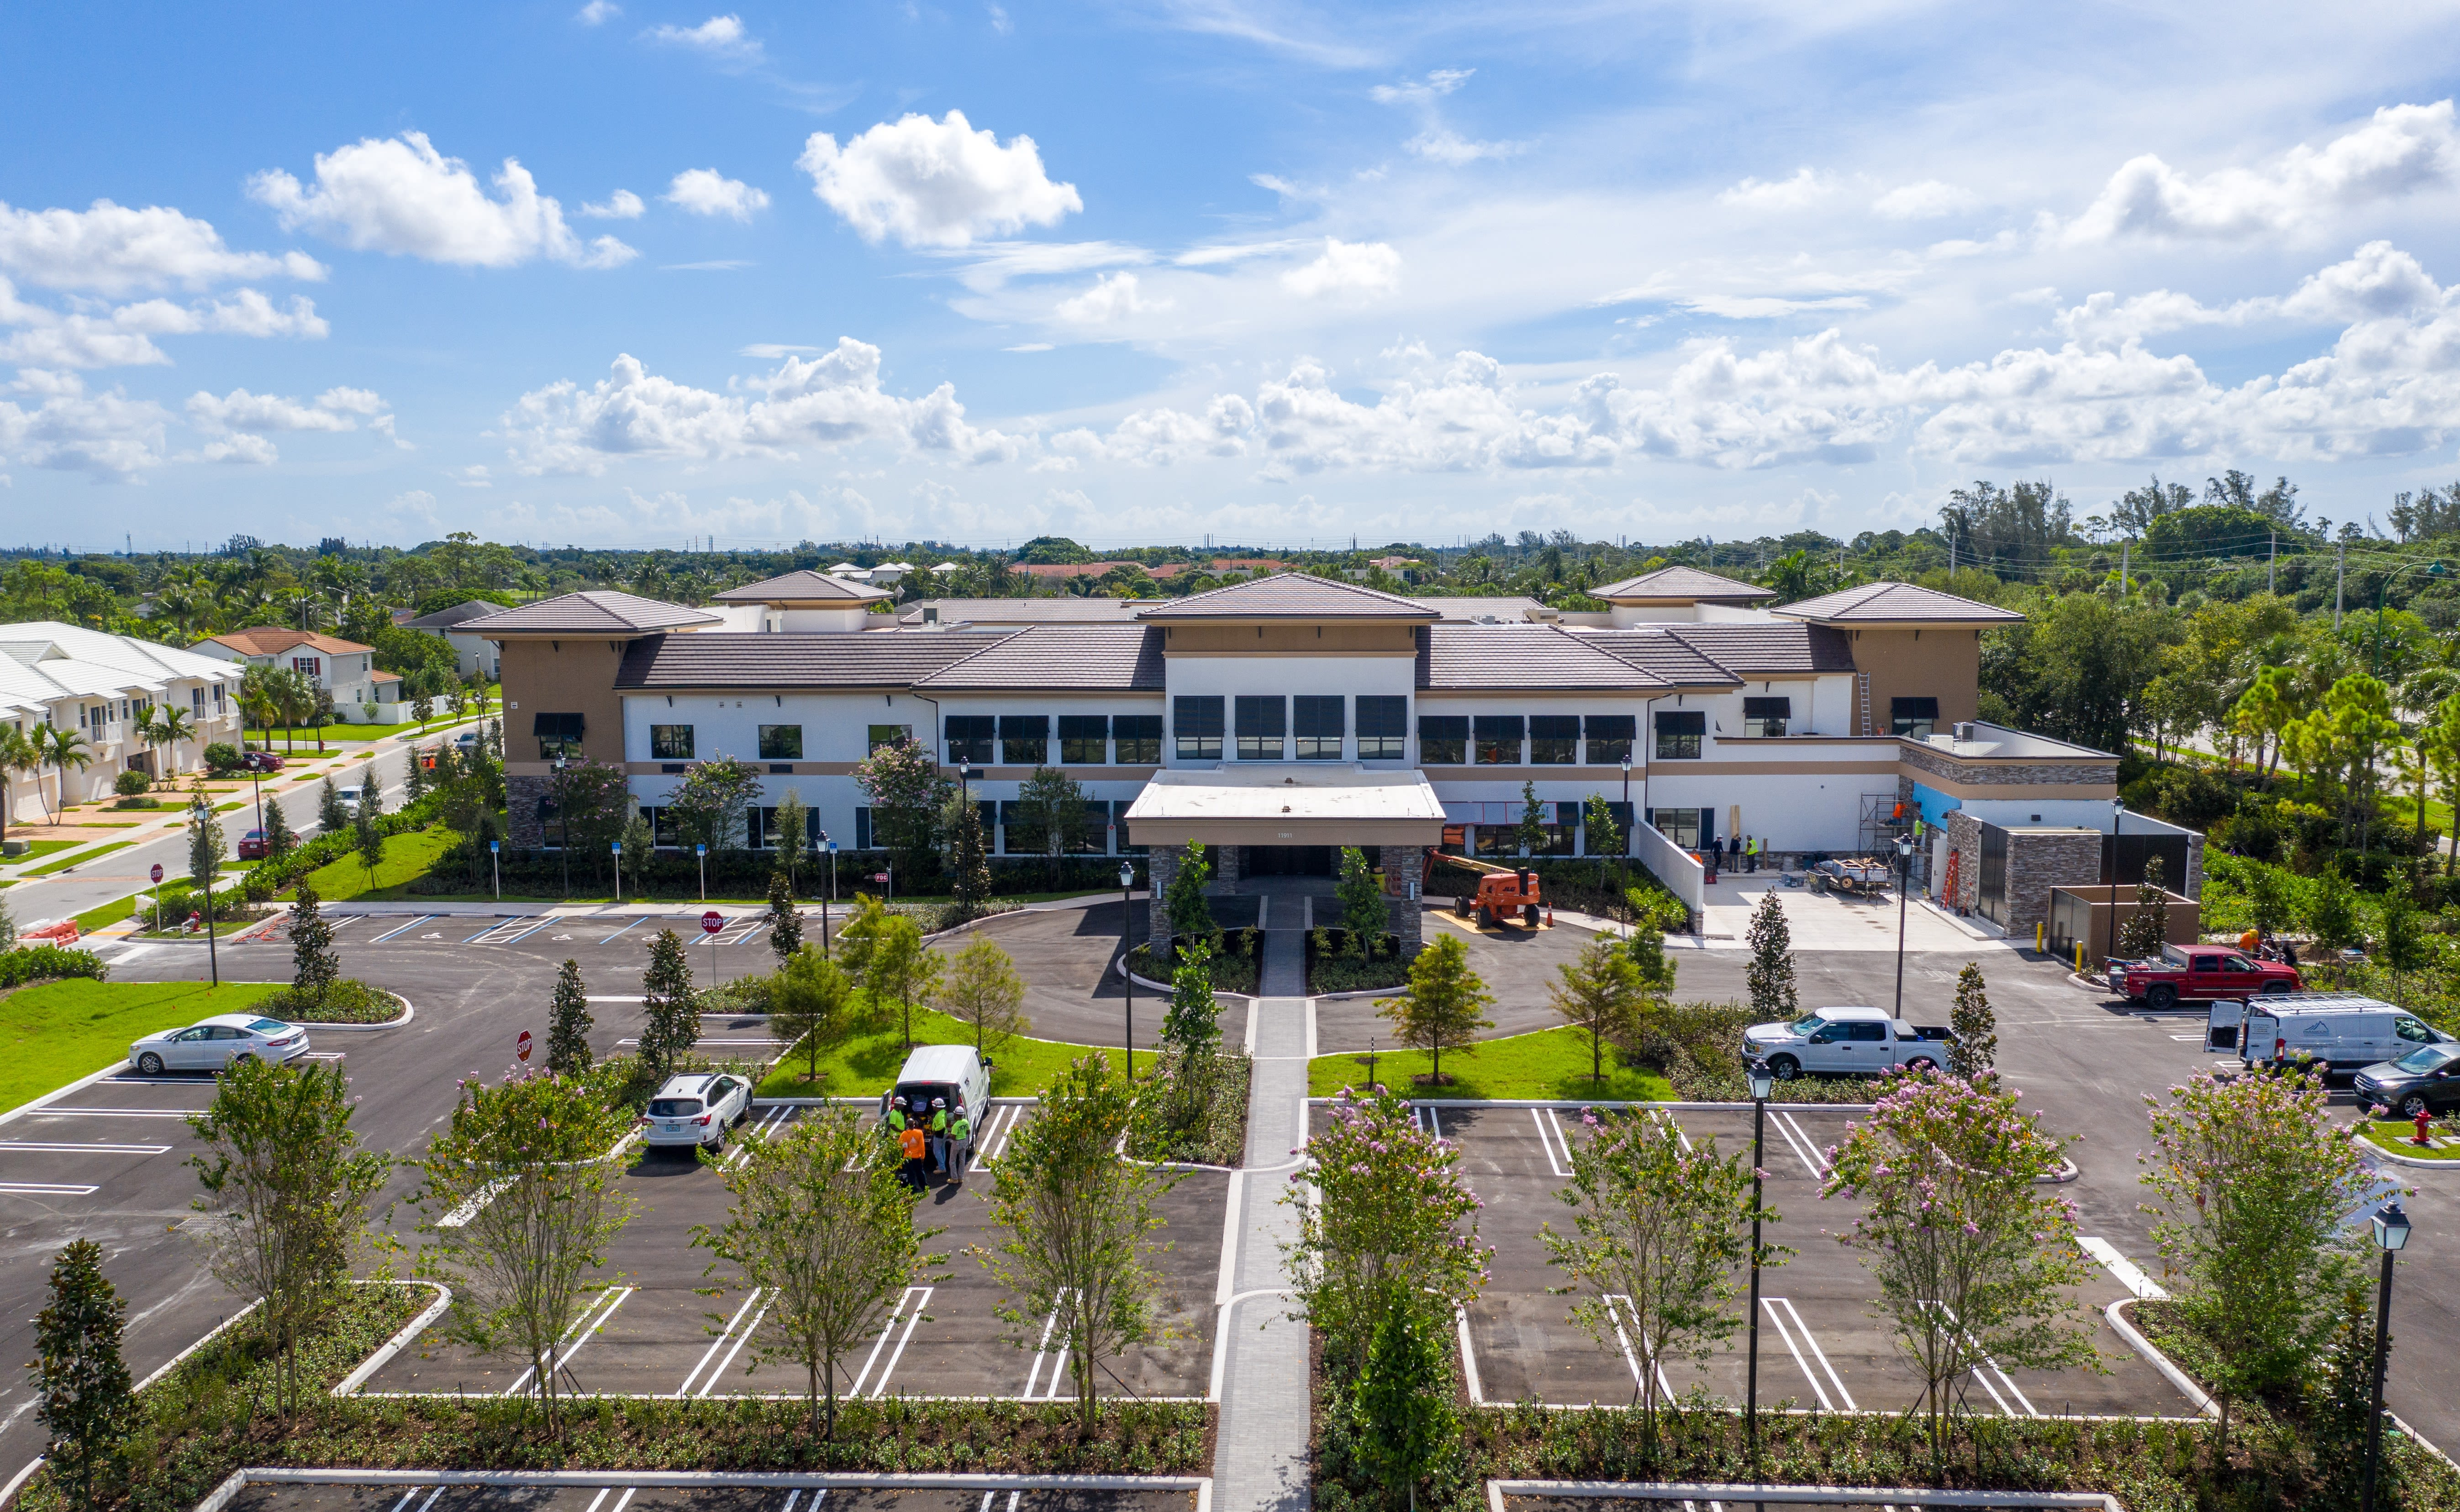 Exterior photo of the new community at Inspired Living Royal Palm Beach in Royal Palm Beach, Florida.